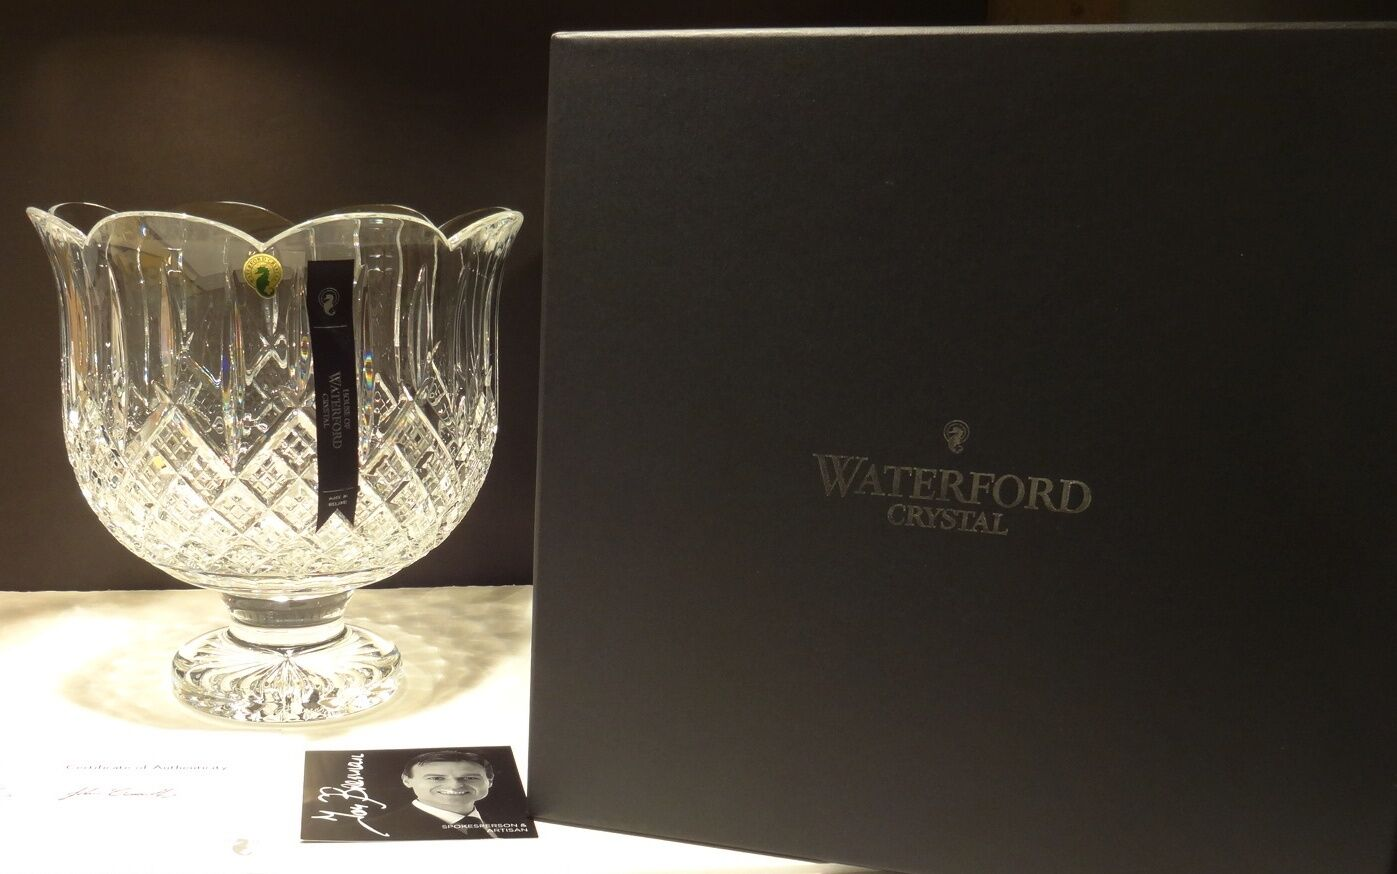 a history of the waterford crystal an irish crystal company